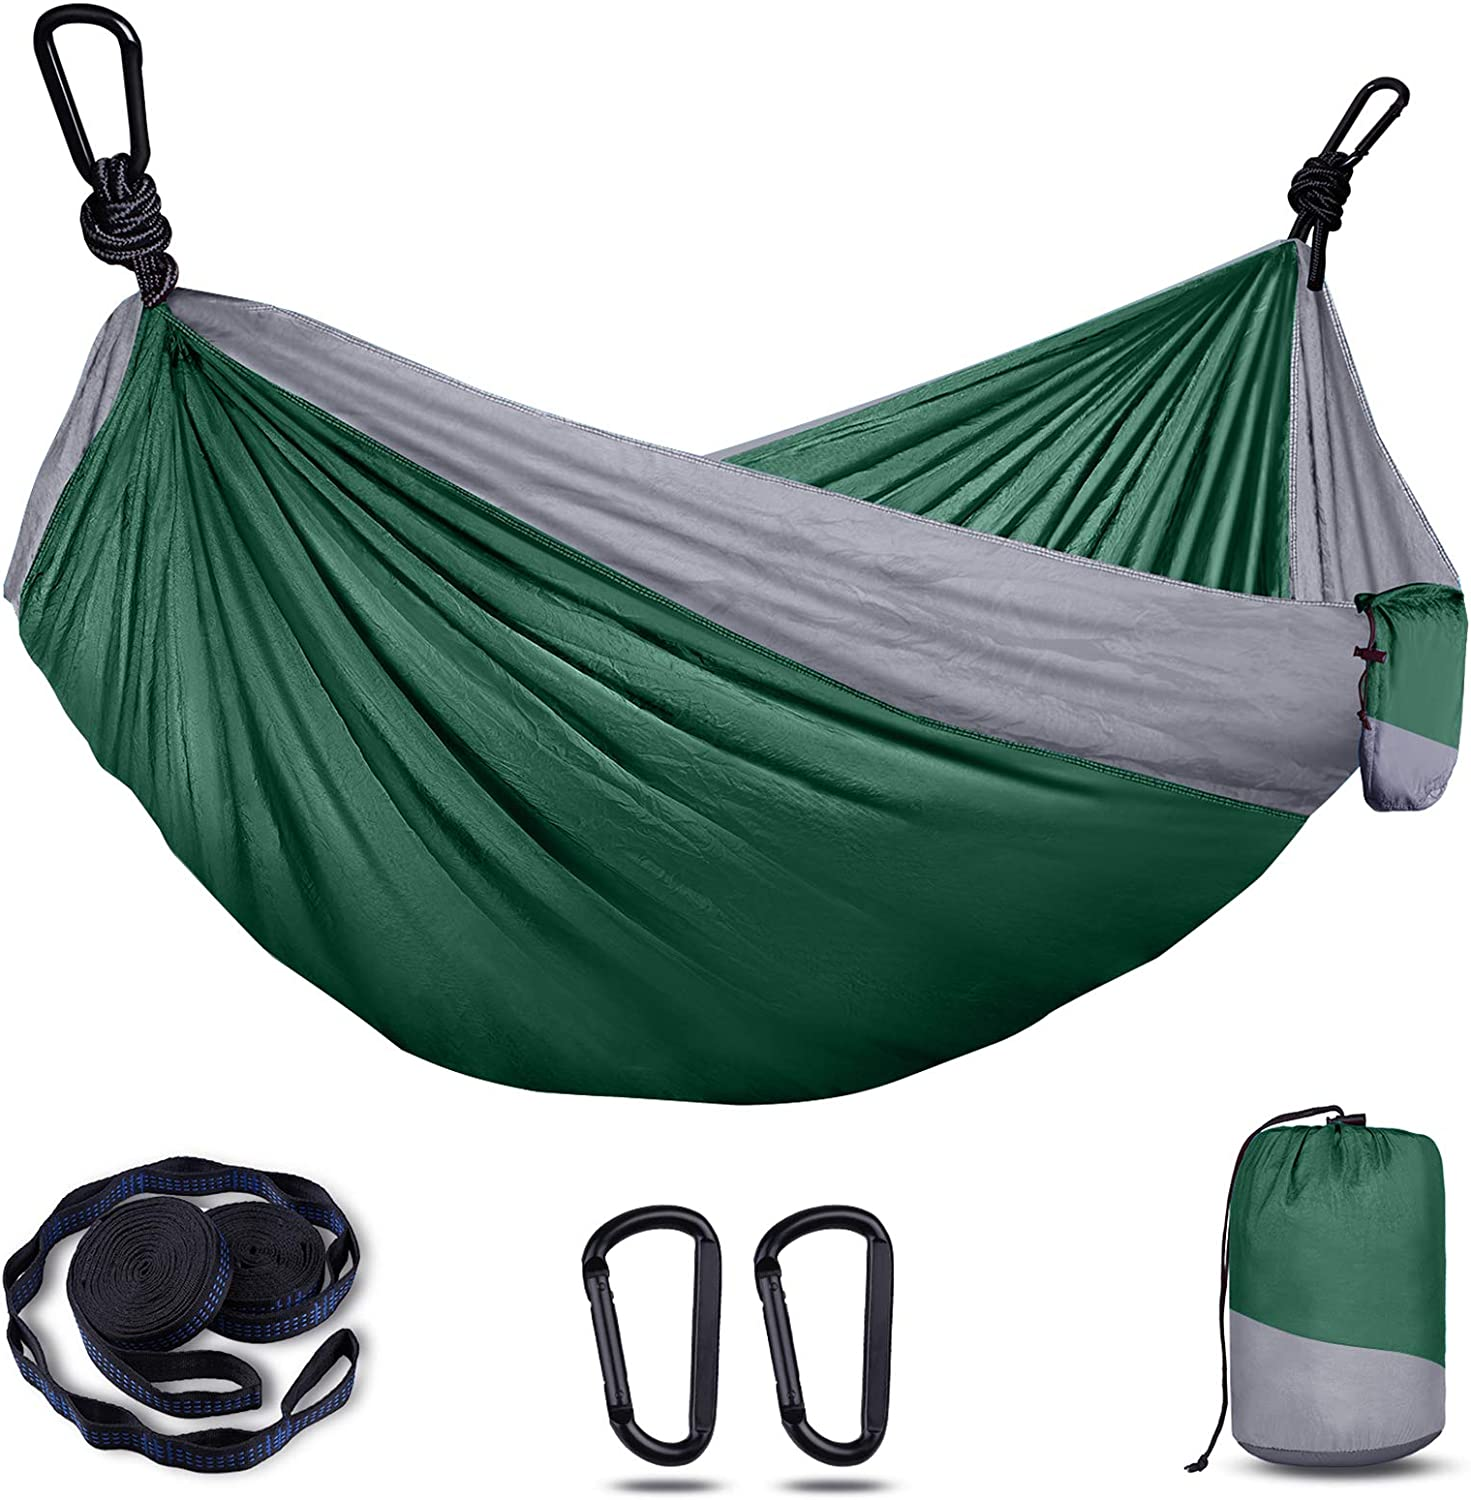 Backpacking Travel Hiking 8+1 Loops Holarun Hammock Portable Nylon Hammock for Kid /& Carabiners Double Camping Hammock for 2 Adult Lightweight Parachute Hammock with Tree Straps Yard Garden